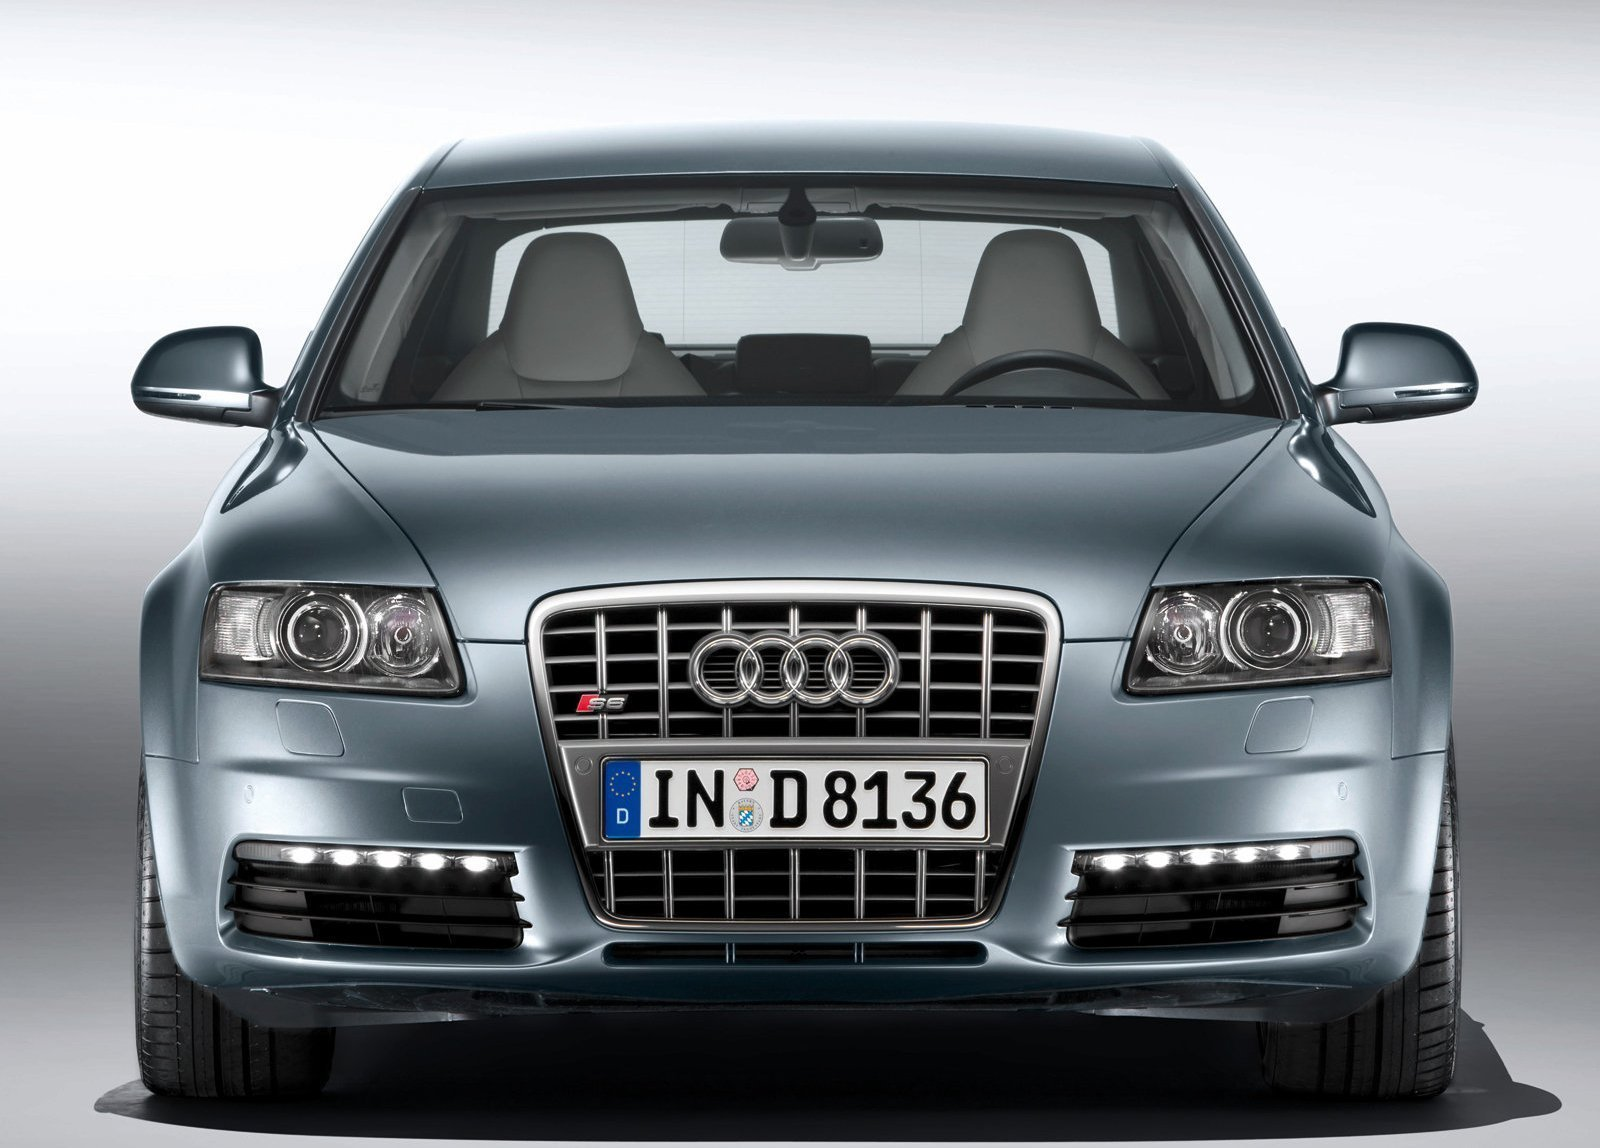 Latest Audi S6 Front View Car Pictures Images – Gaddidekho Com Free Download